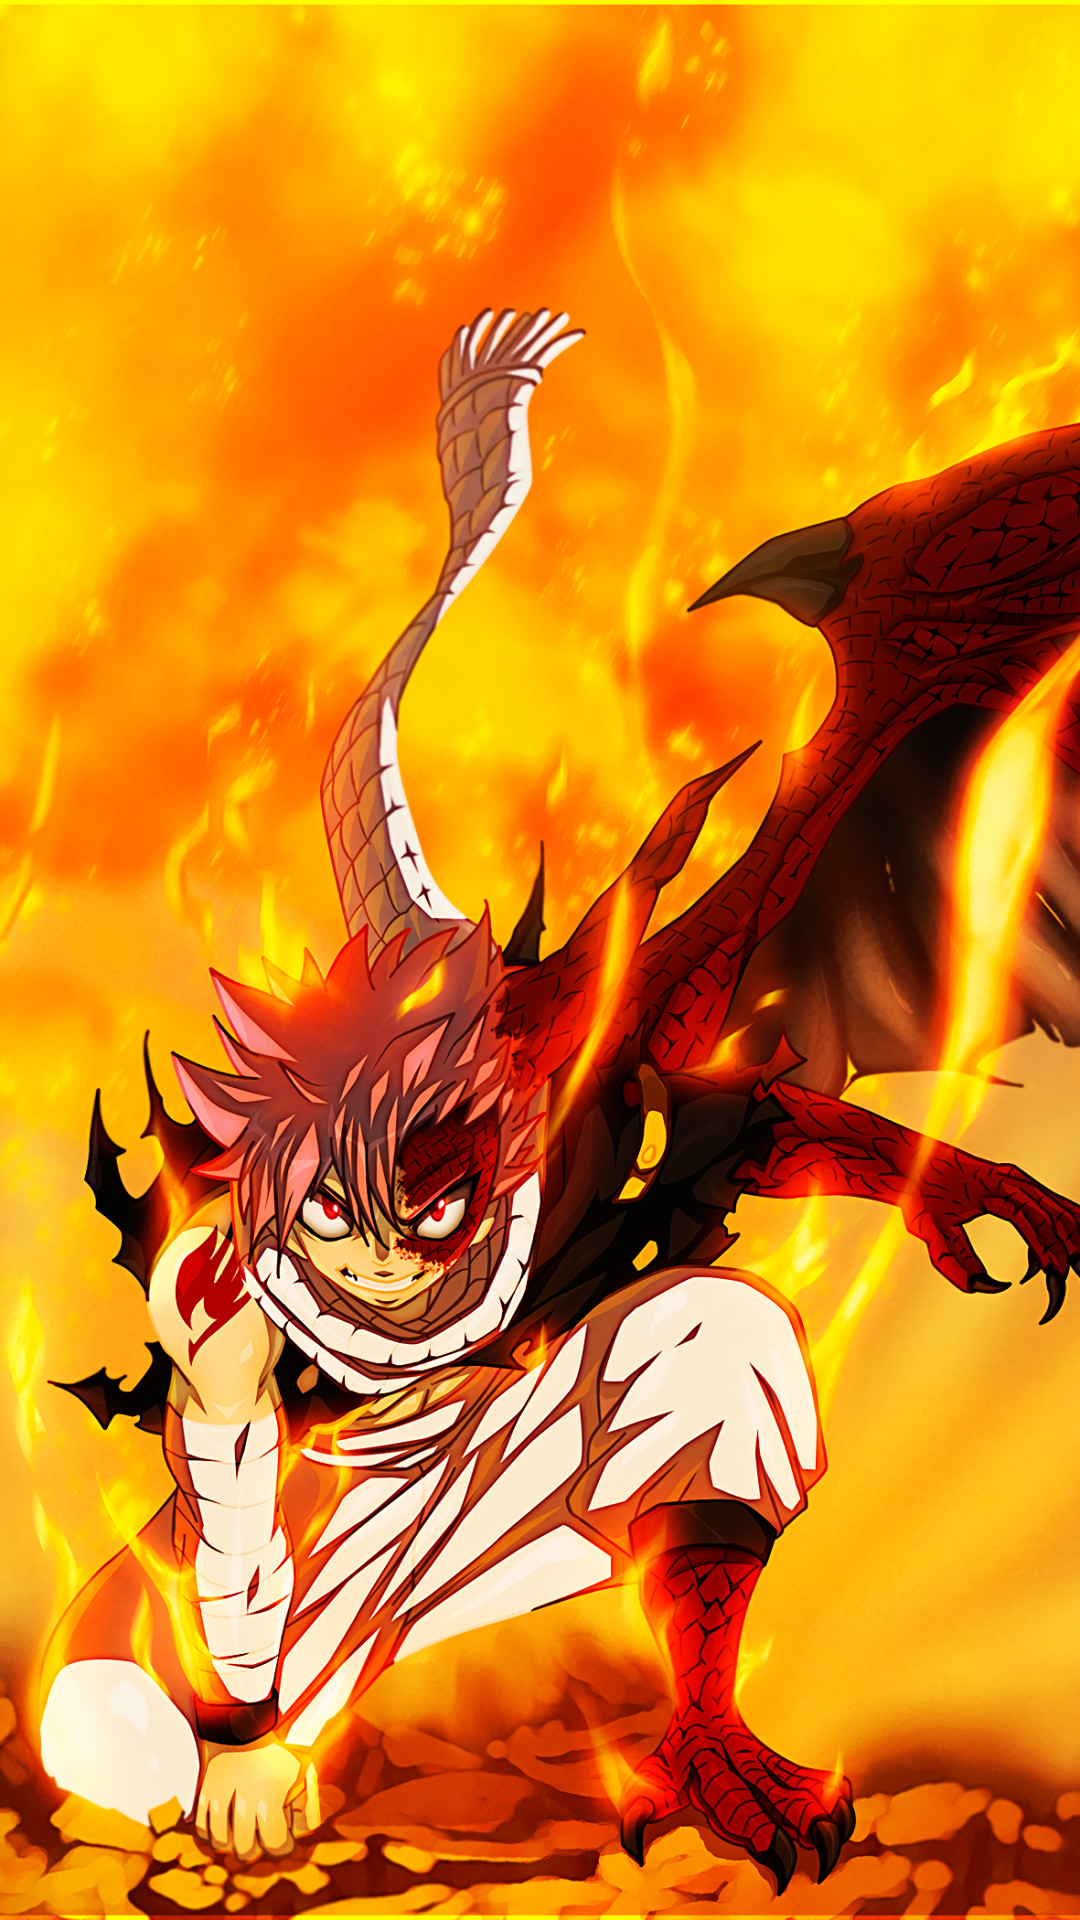 Res: 1080x1920, Fairy Tail Natsu Dragon Wallpaper Desktop Background Is Cool Wallpapers